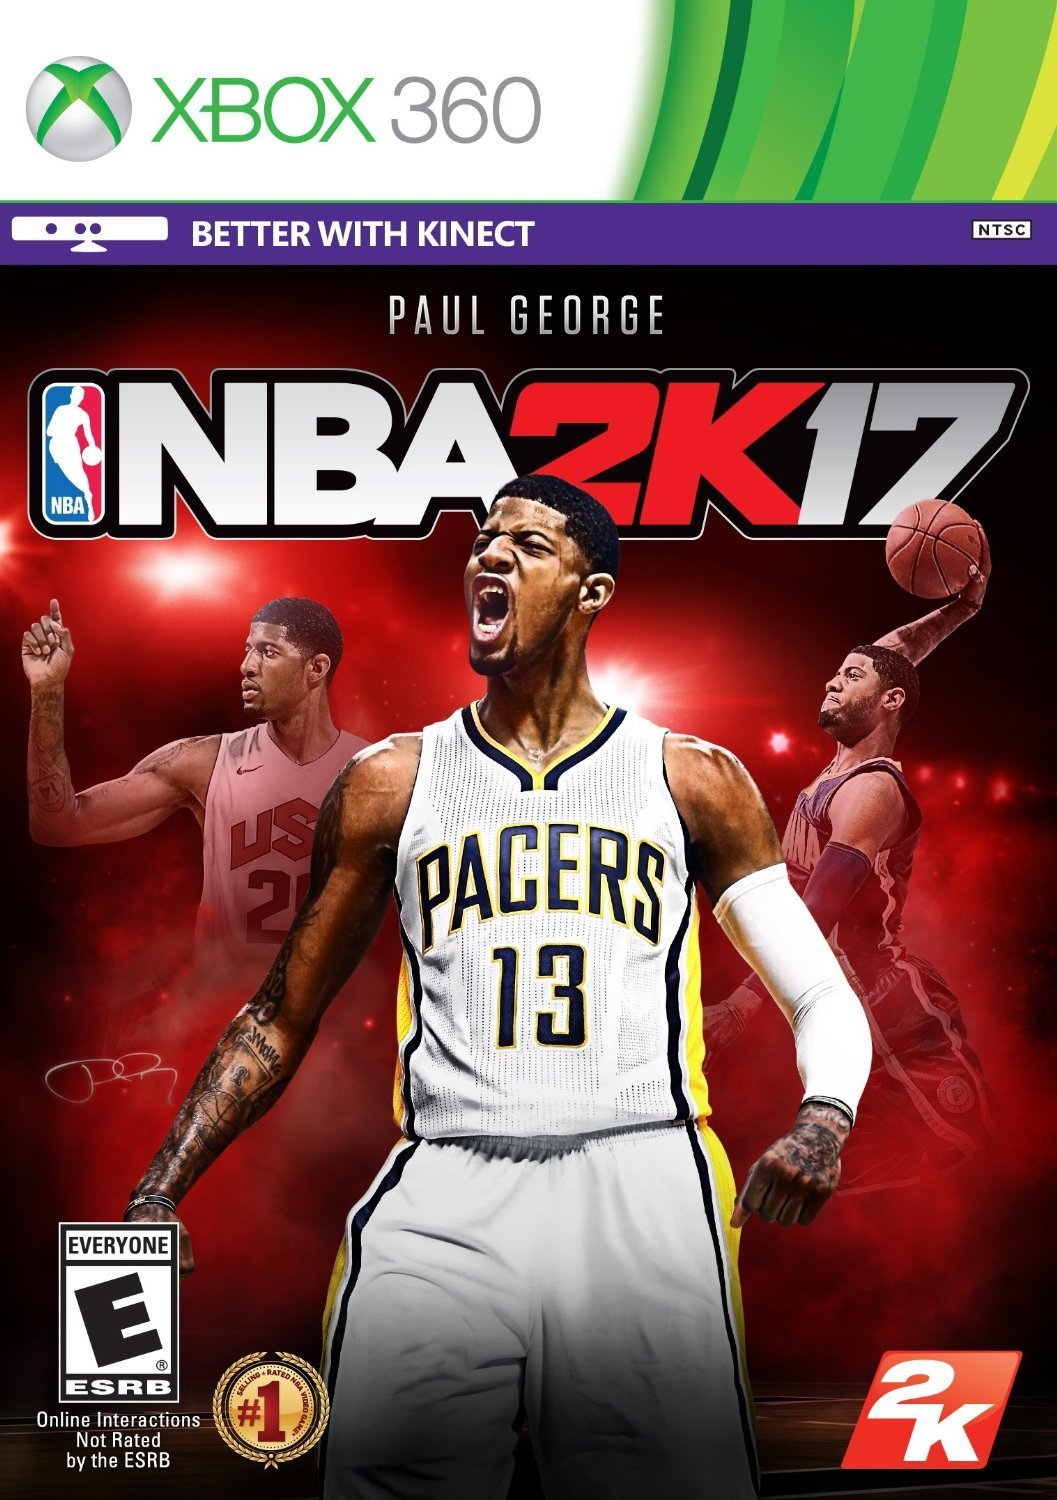 [GAMES] NBA 2K17 (XBOX360/Region free)